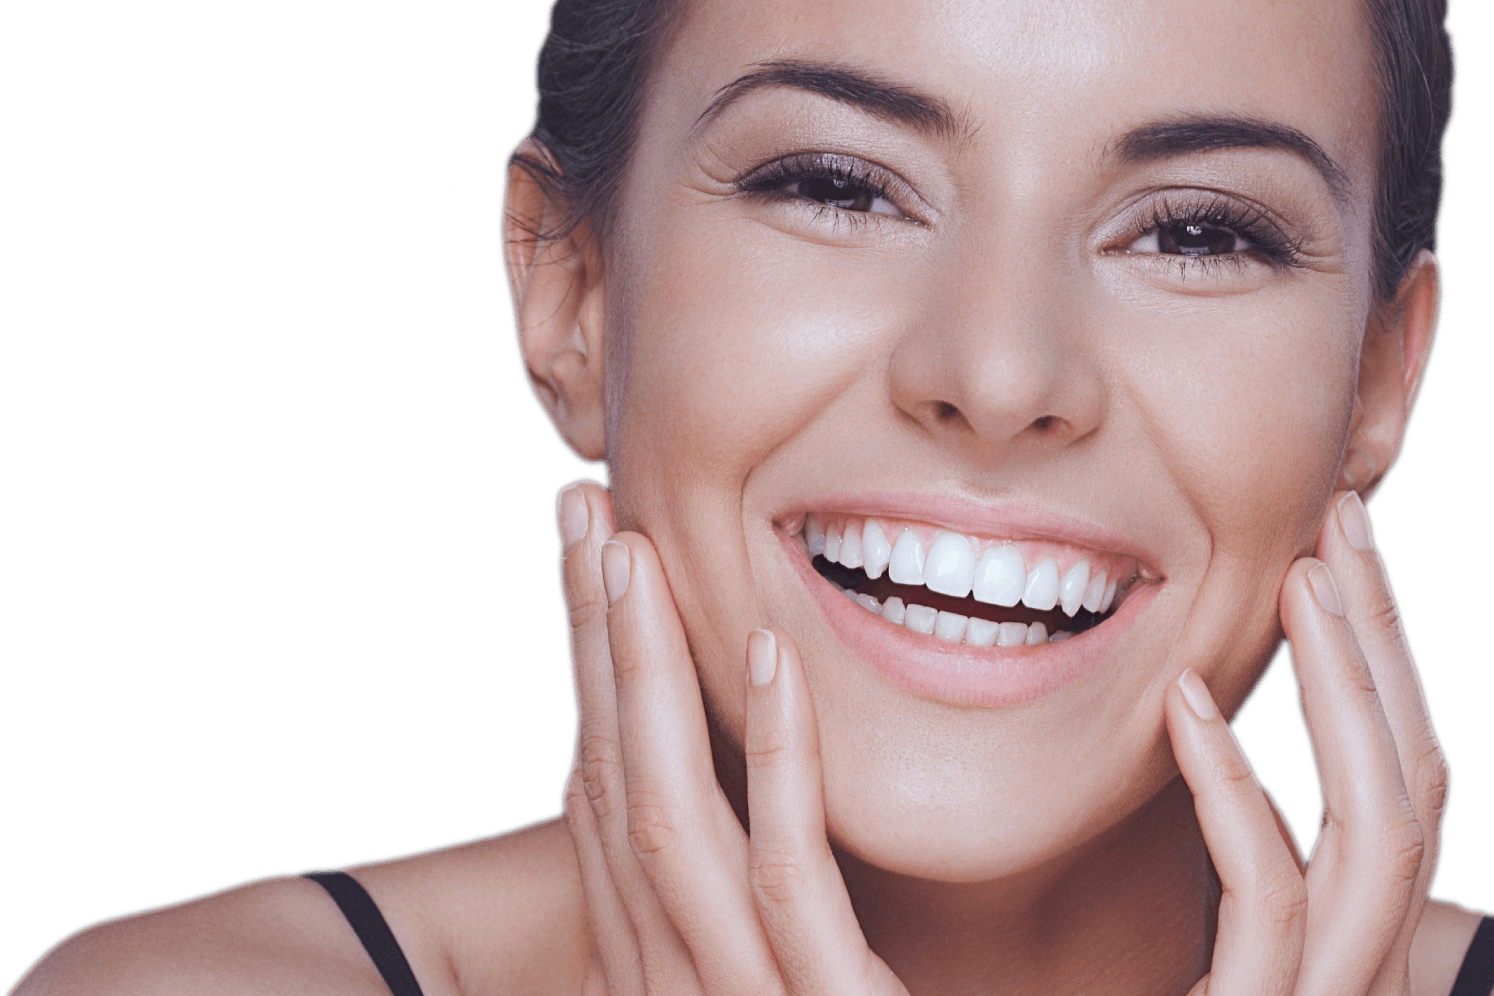 How to Get Rid of Wrinkles Around Mouth and Chin? Let's Explore